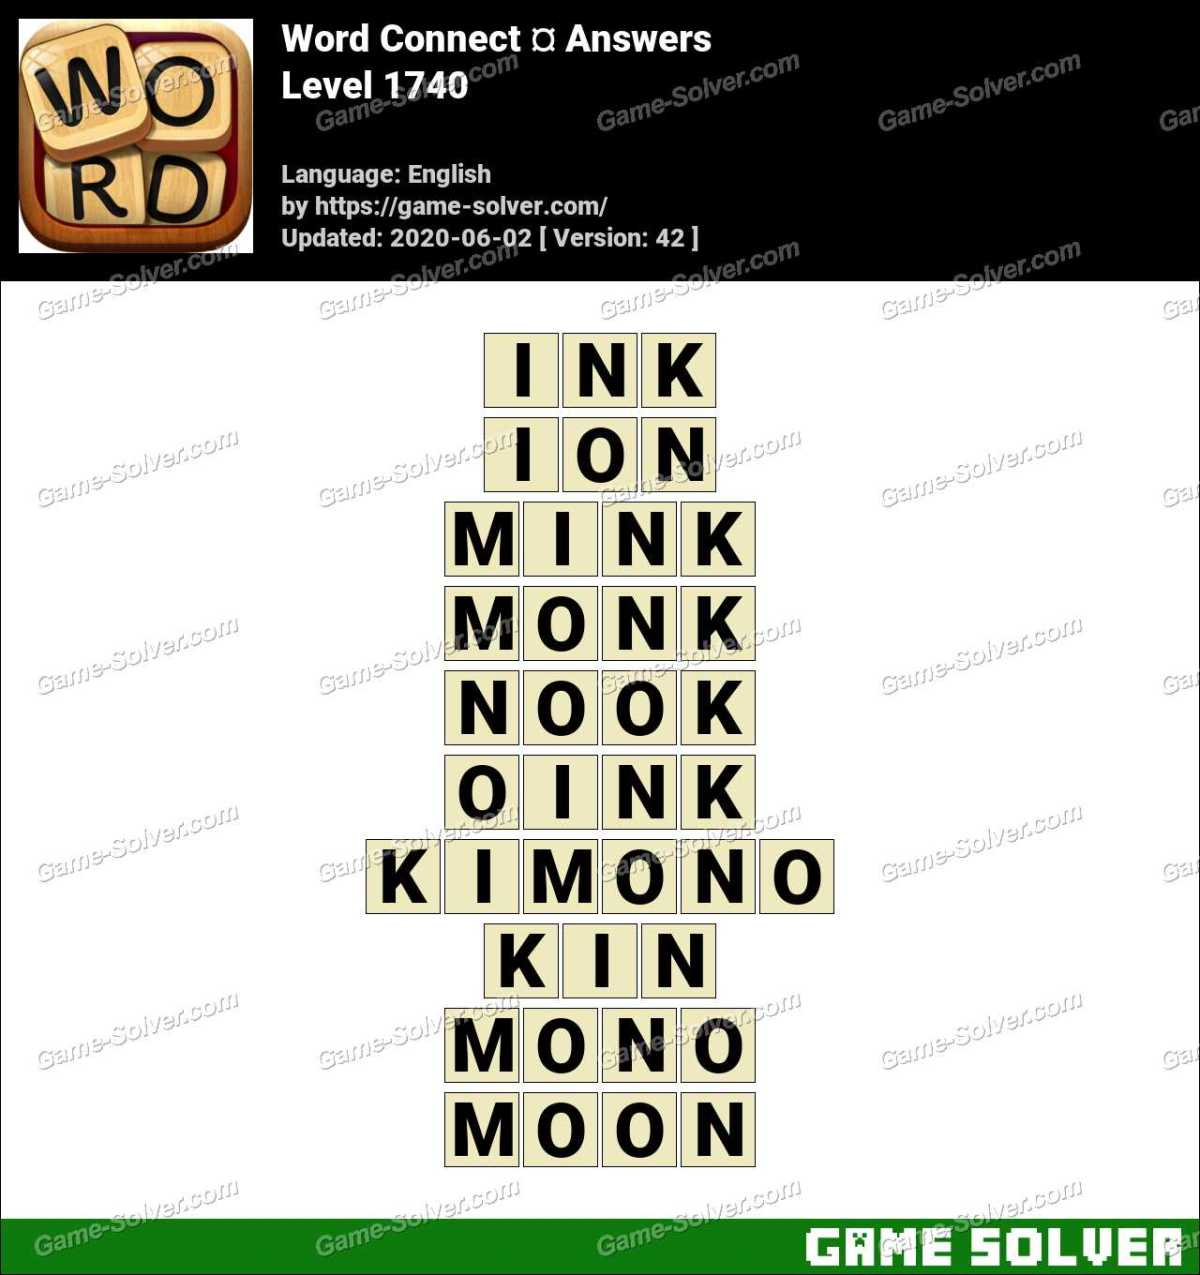 Word Connect Level 1740 Answers